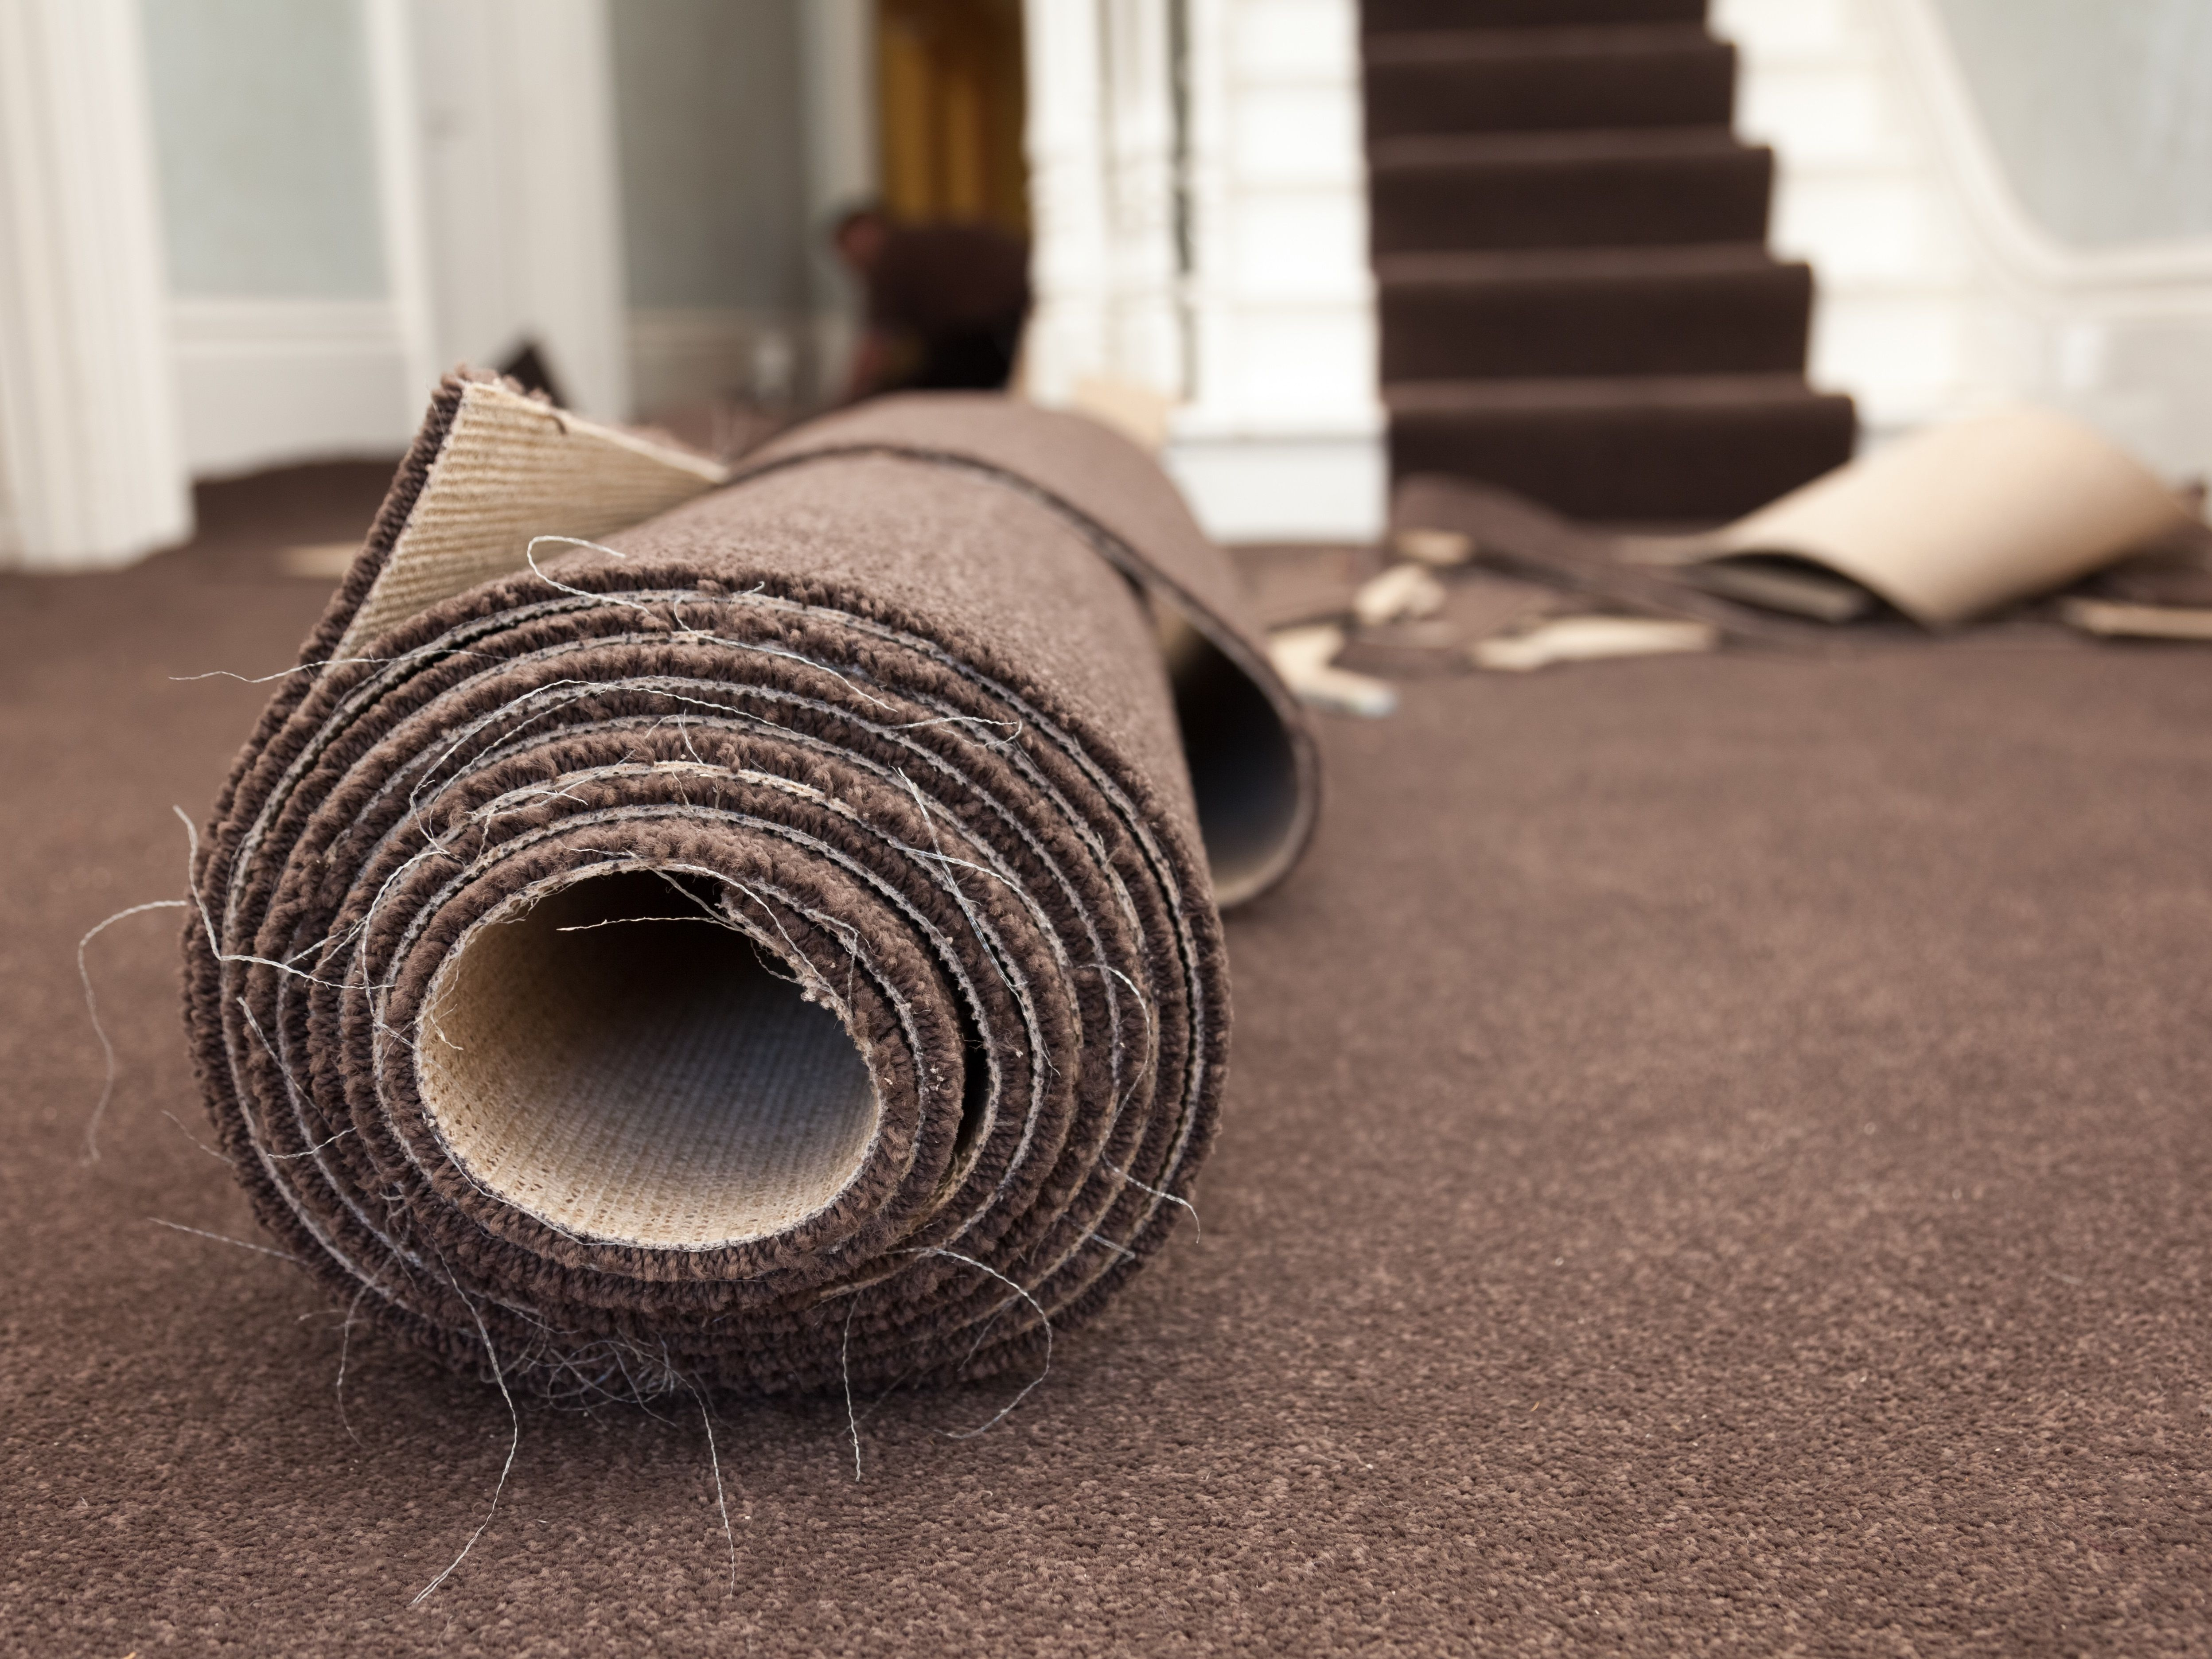 How To Install New Carpeting Over Old Carpeting | Low Pile Carpet For Stairs | Wool | Carpet Wrapped | Hallway | Bedroom | High End